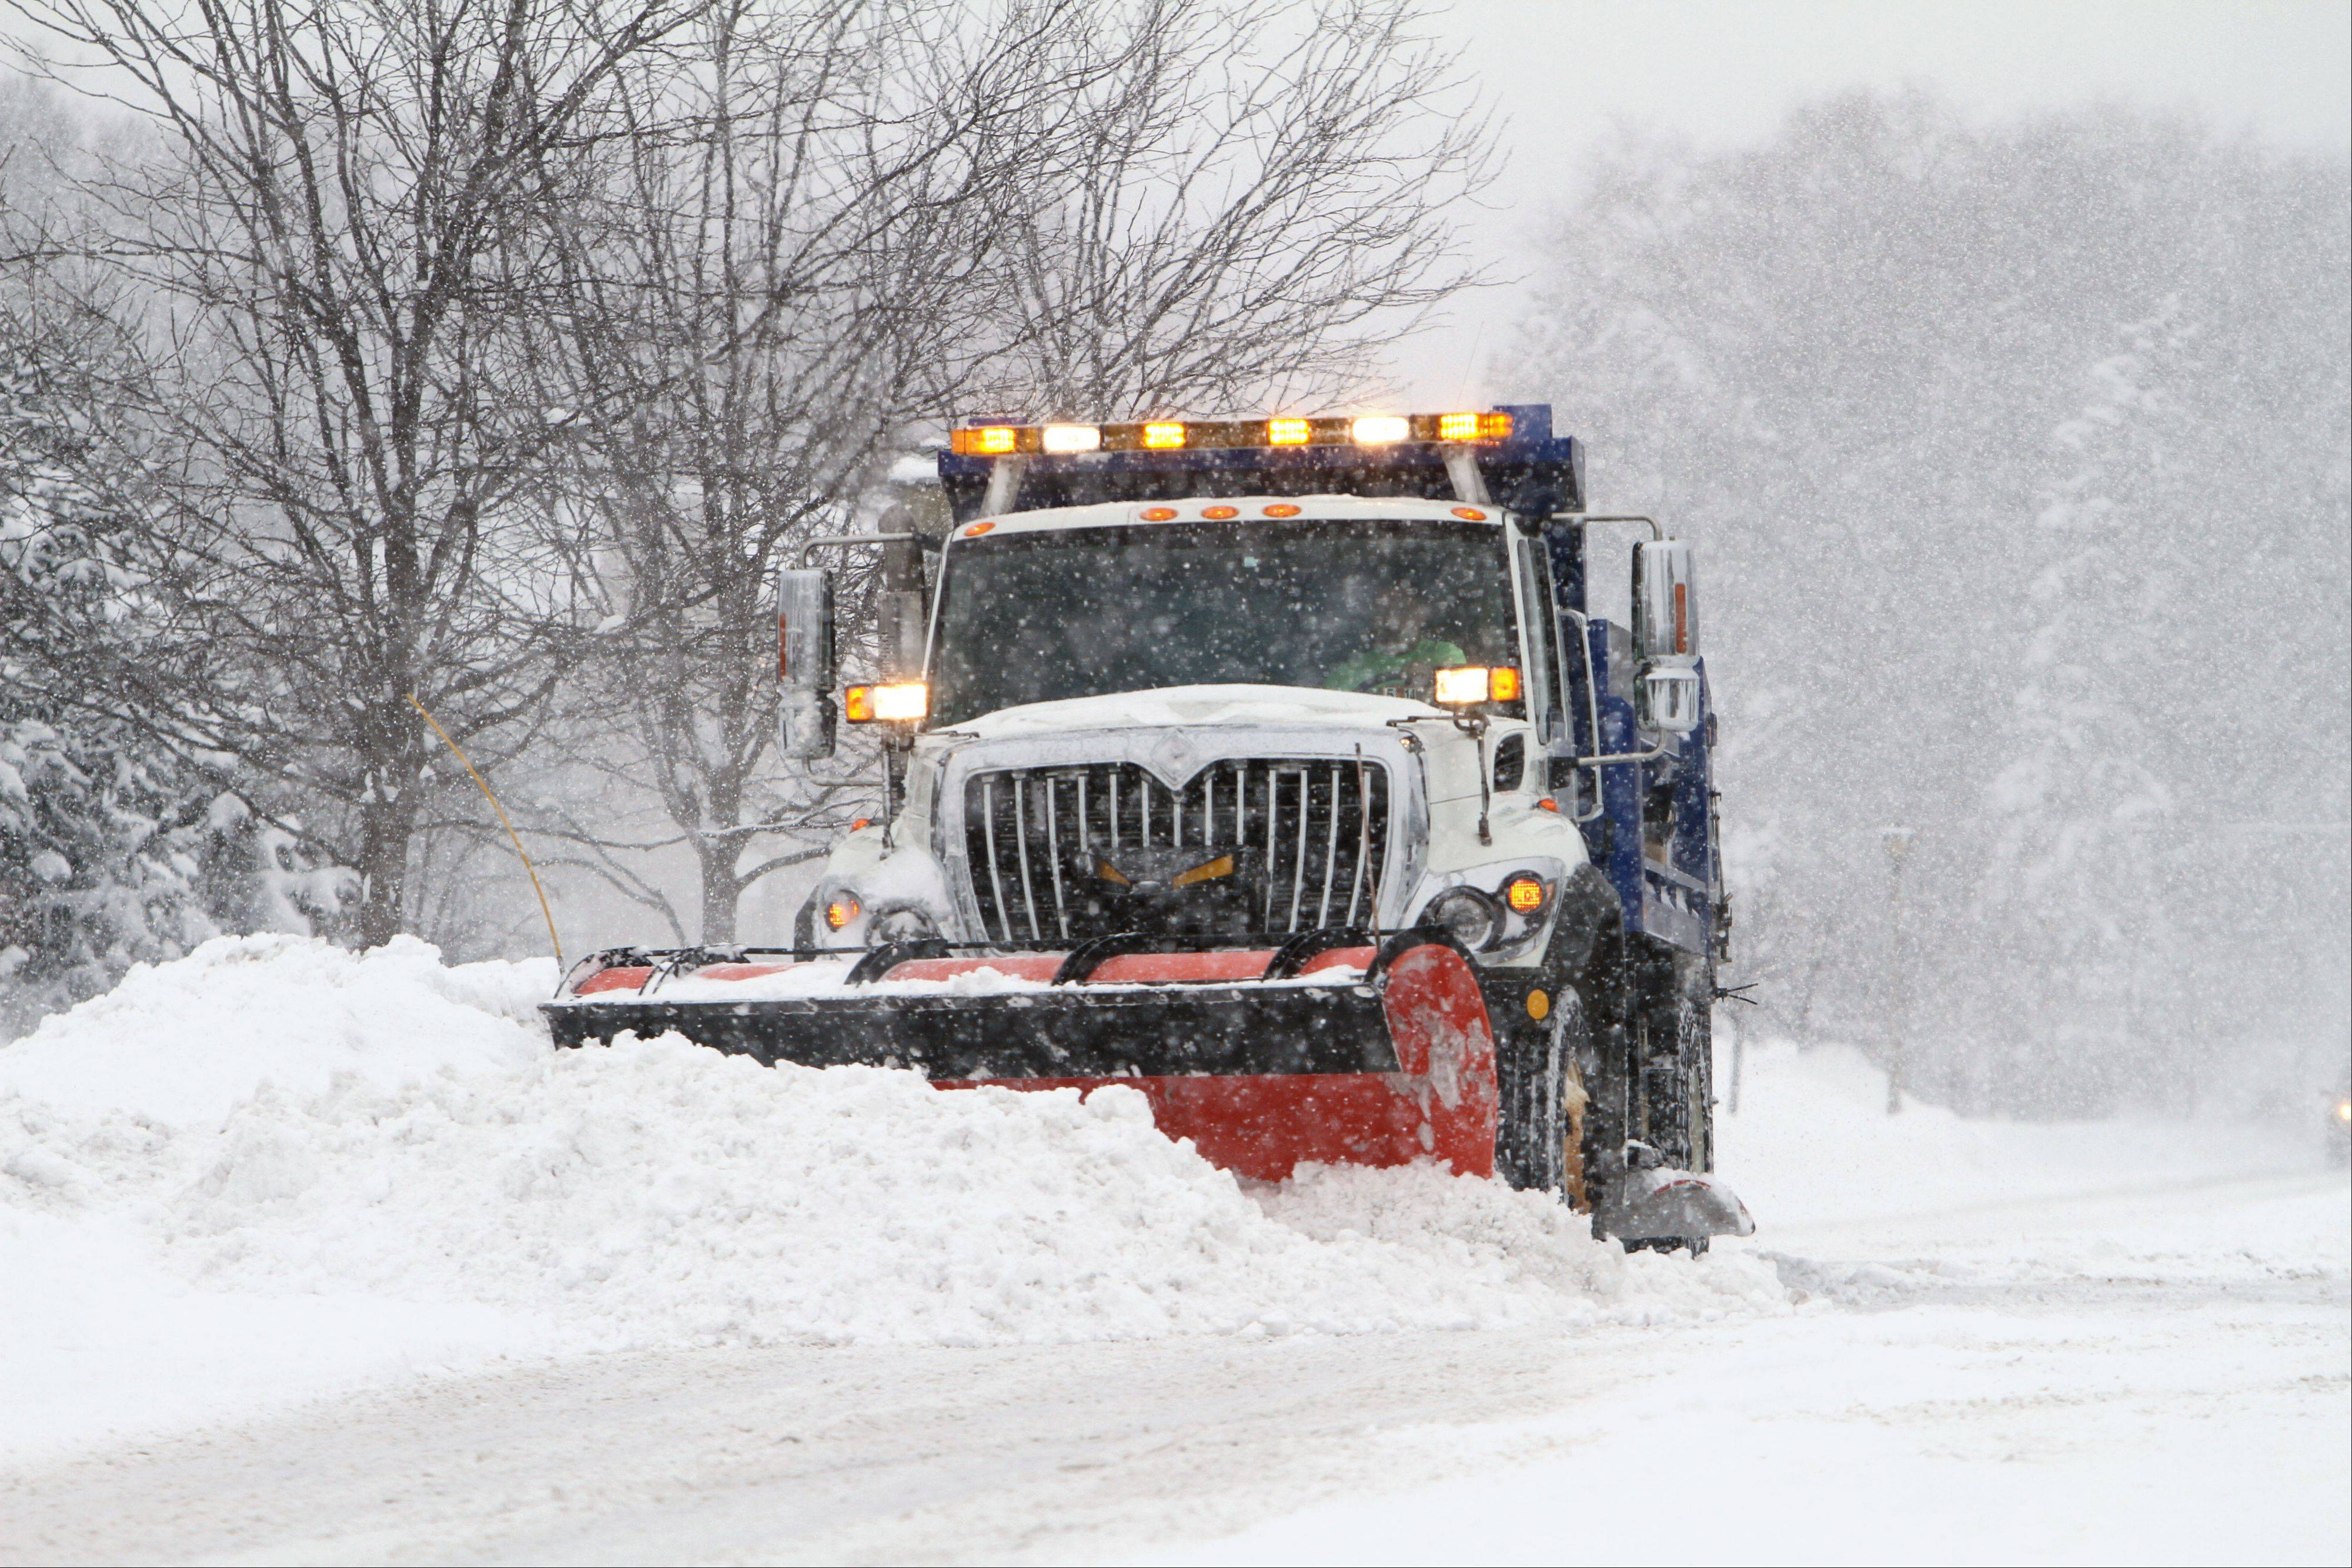 Steve Lundy/slundy@dailyherald.comA snowplow makes its way down Garfield Avenue in Libertyville.